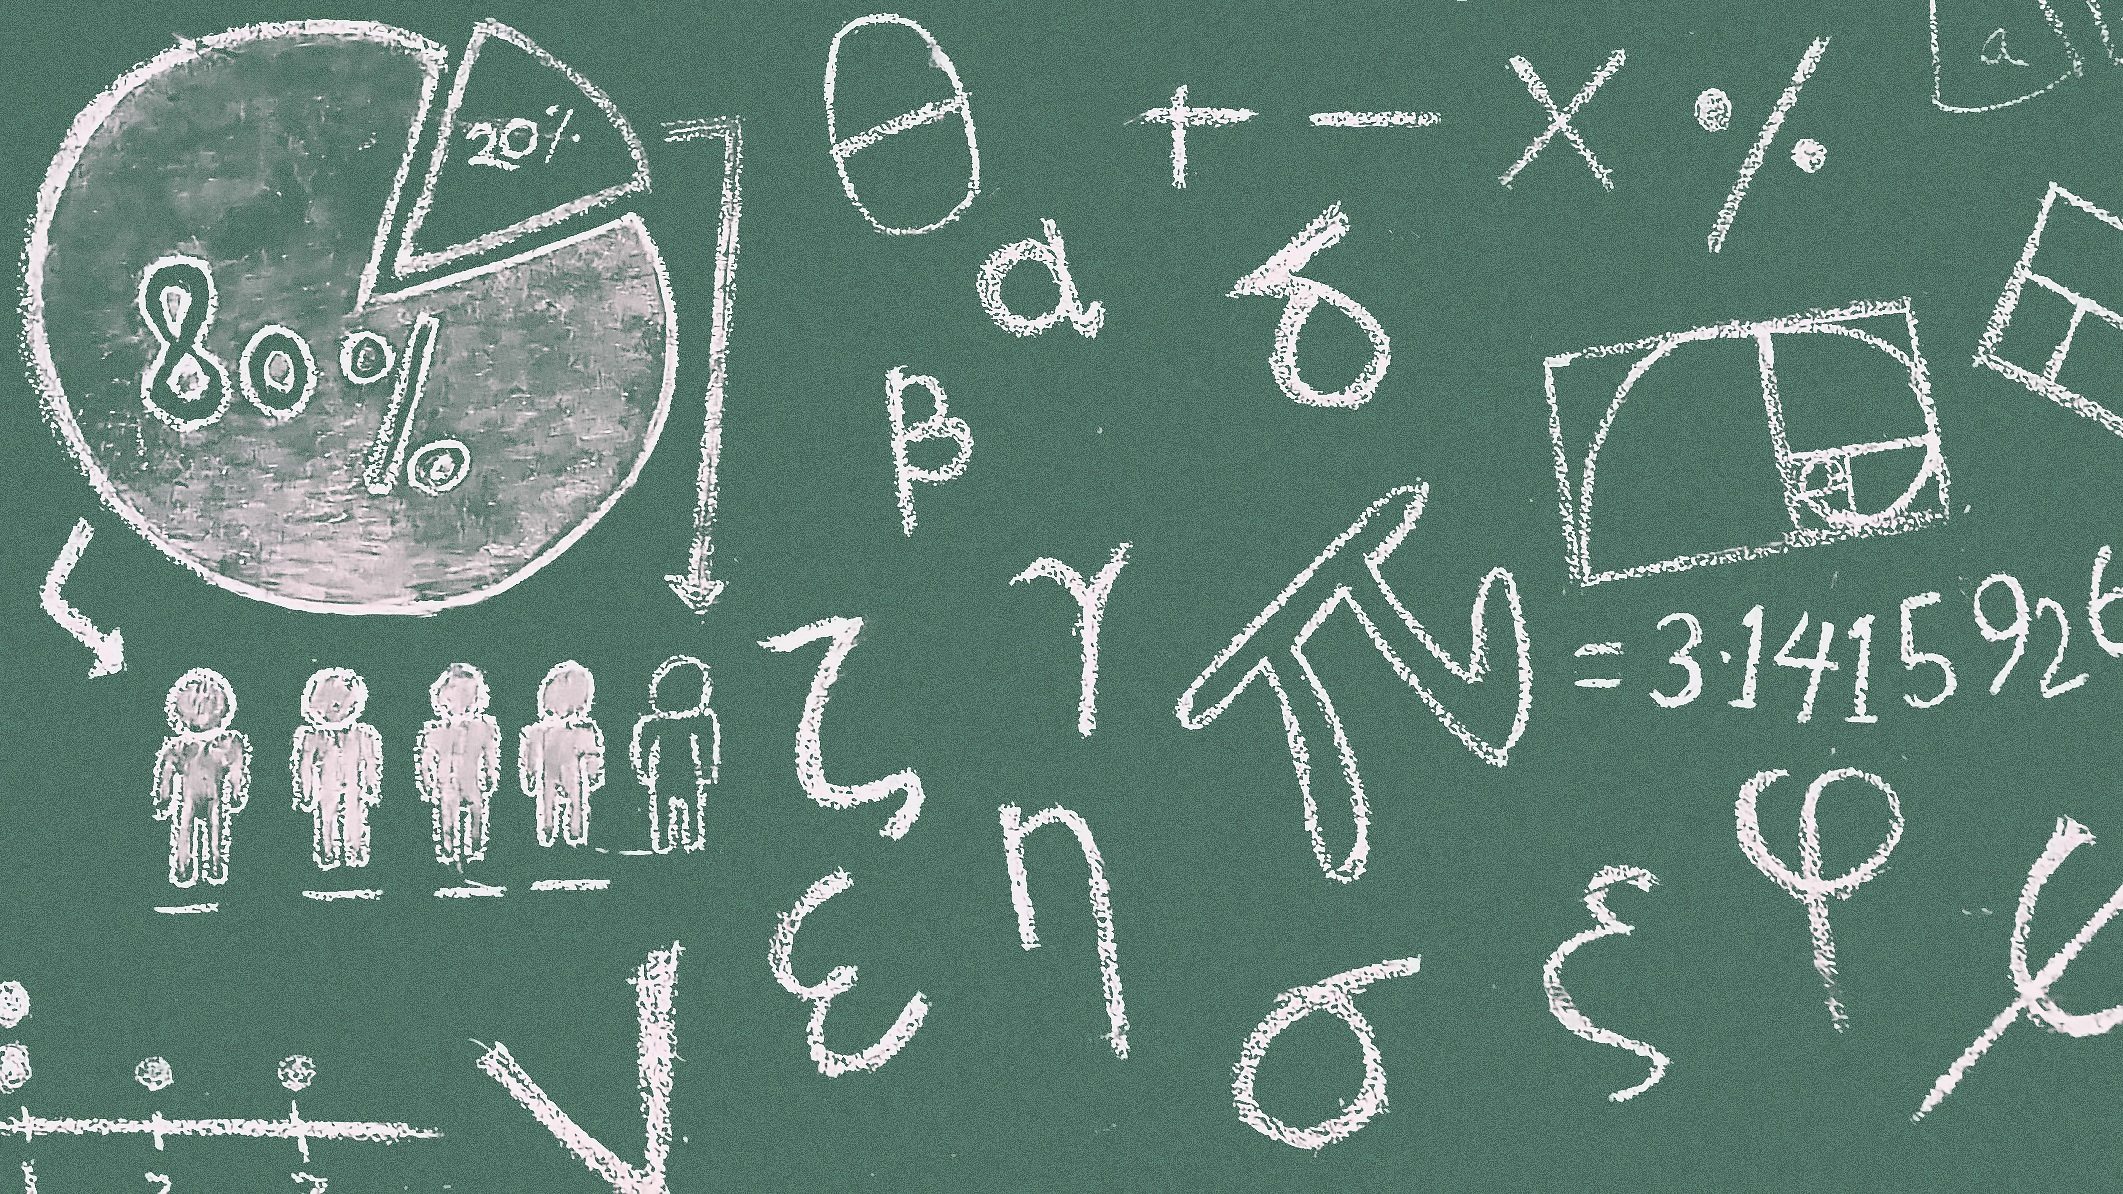 Random math symbols on a chalkboard